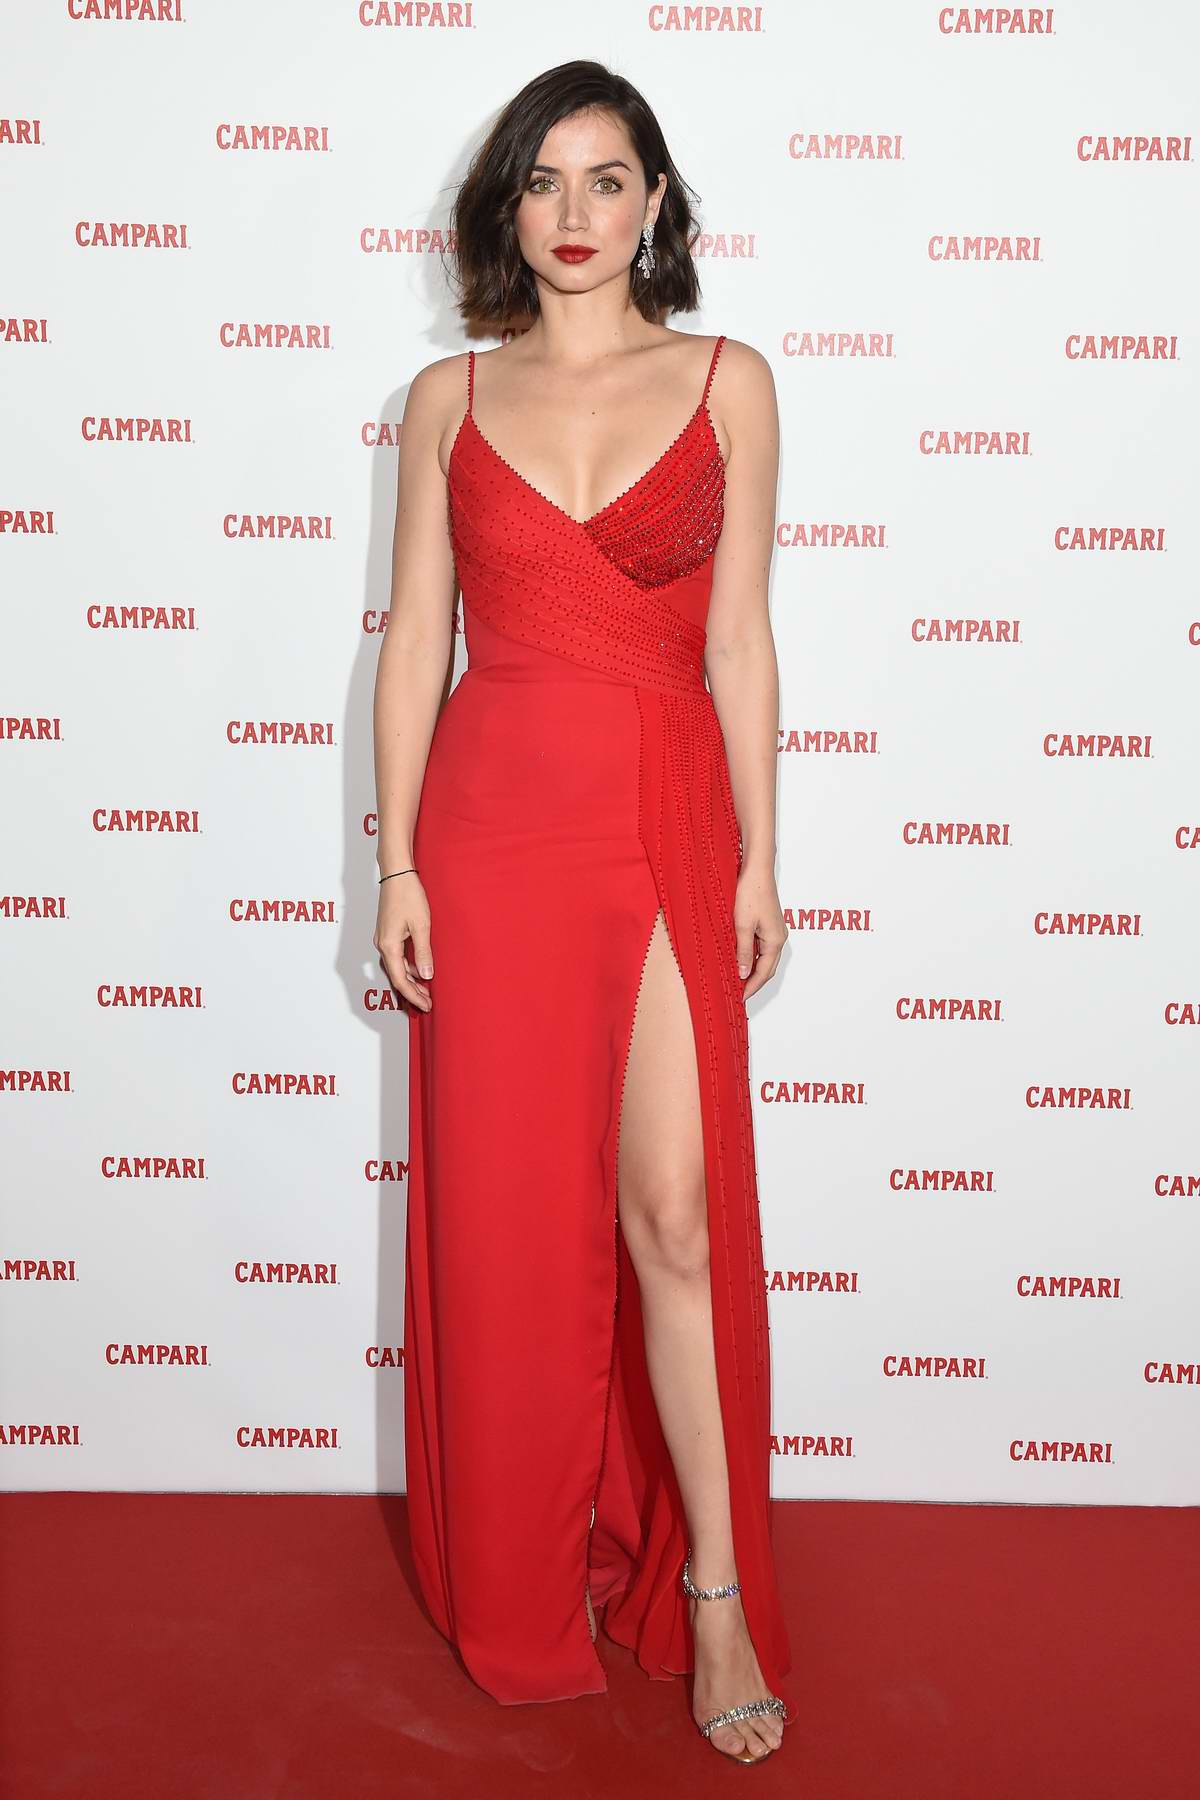 Ana de Armas attends the Campari Red Diaries 2019 Premiere Event in Milan, Italy